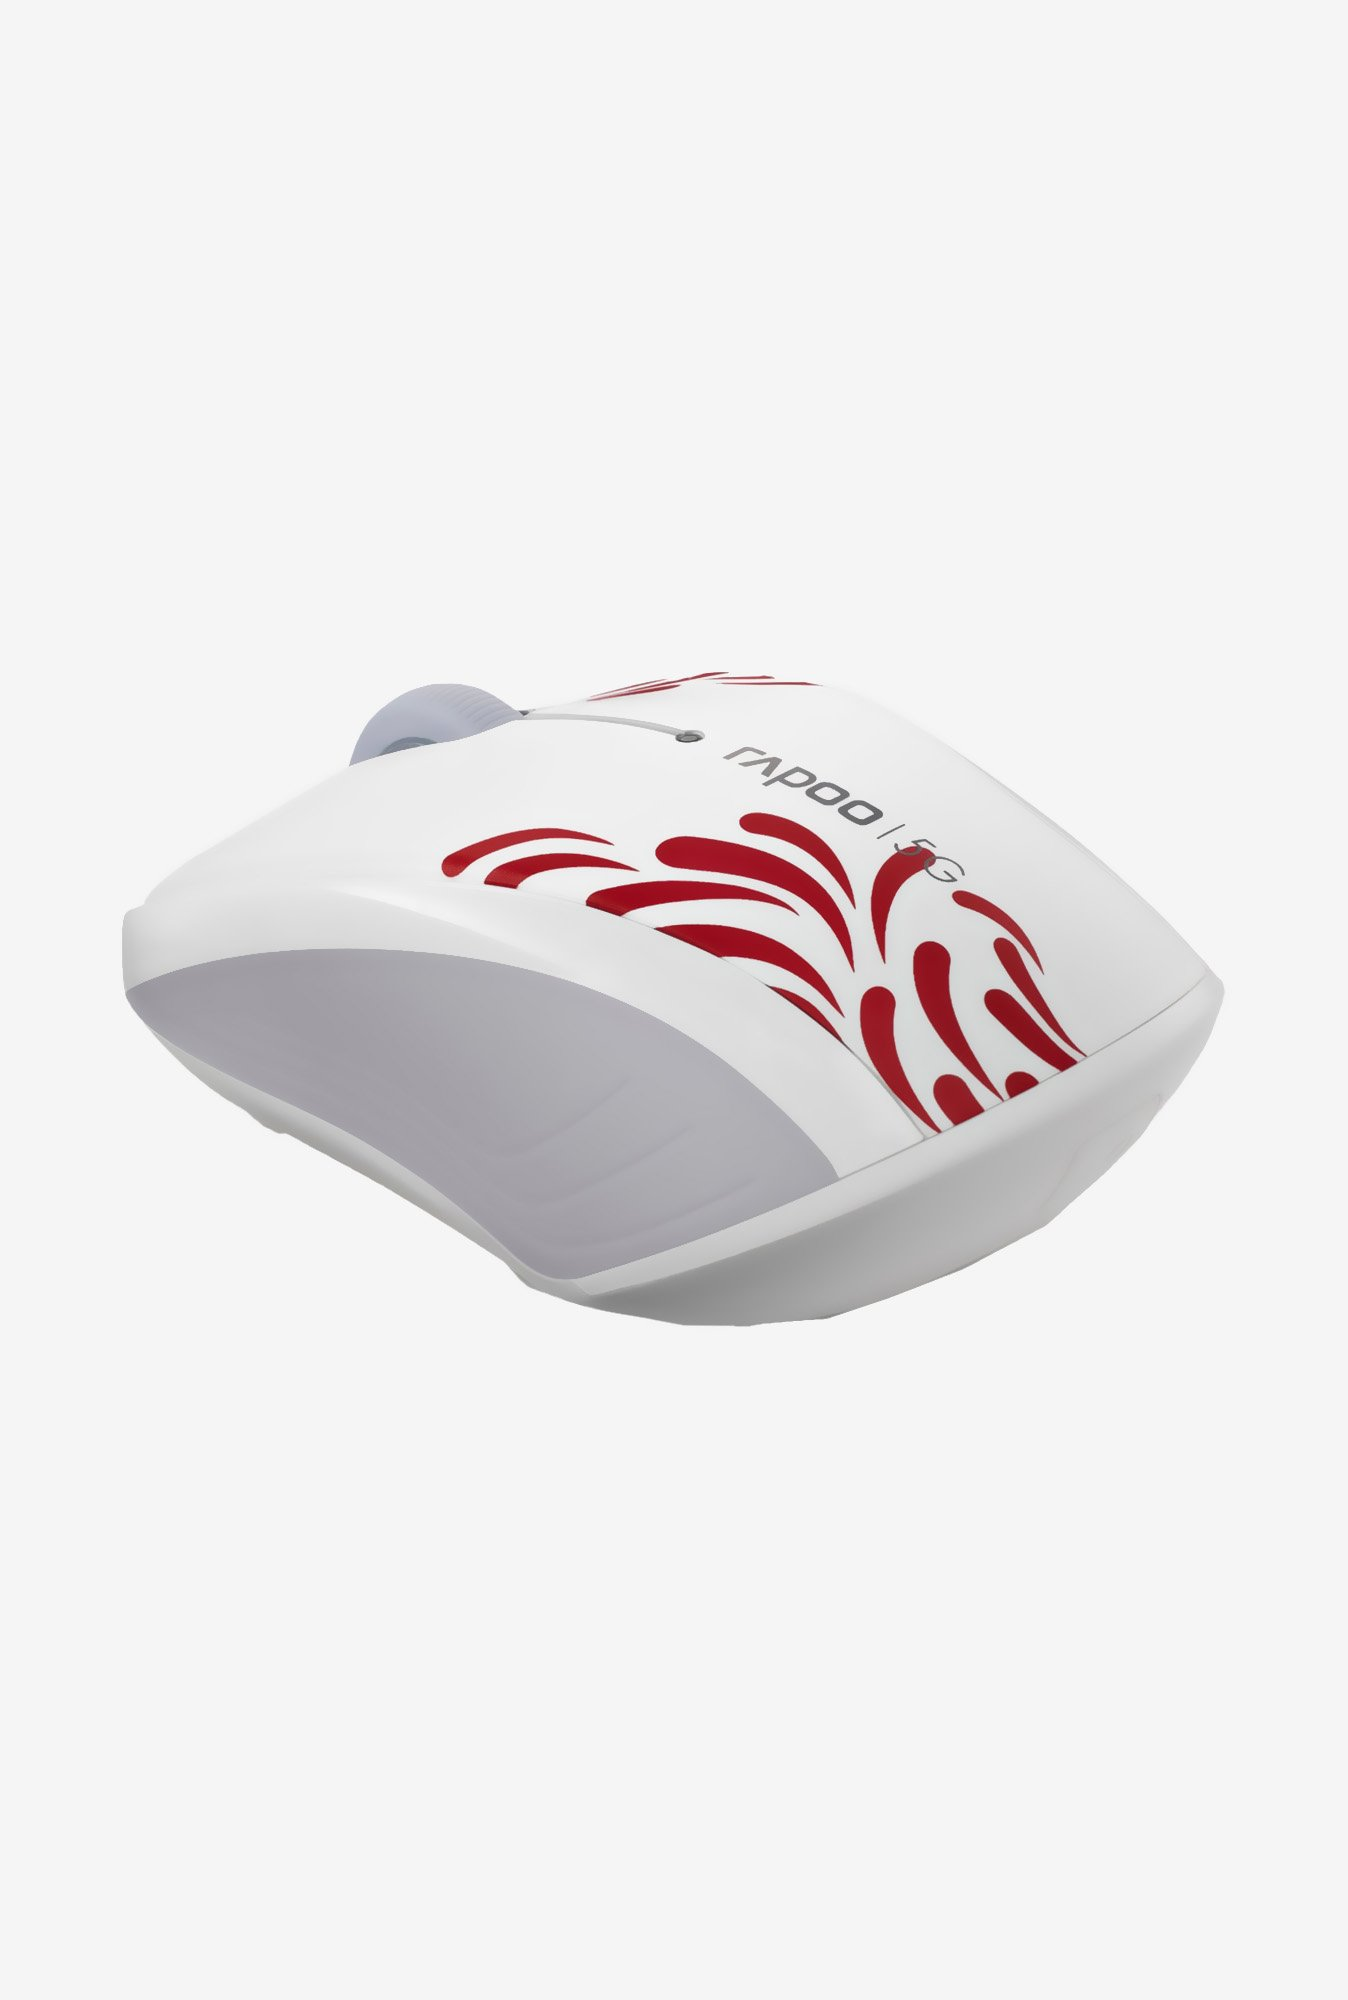 Rapoo 5G Wireless 3100P 3Key Mouse White